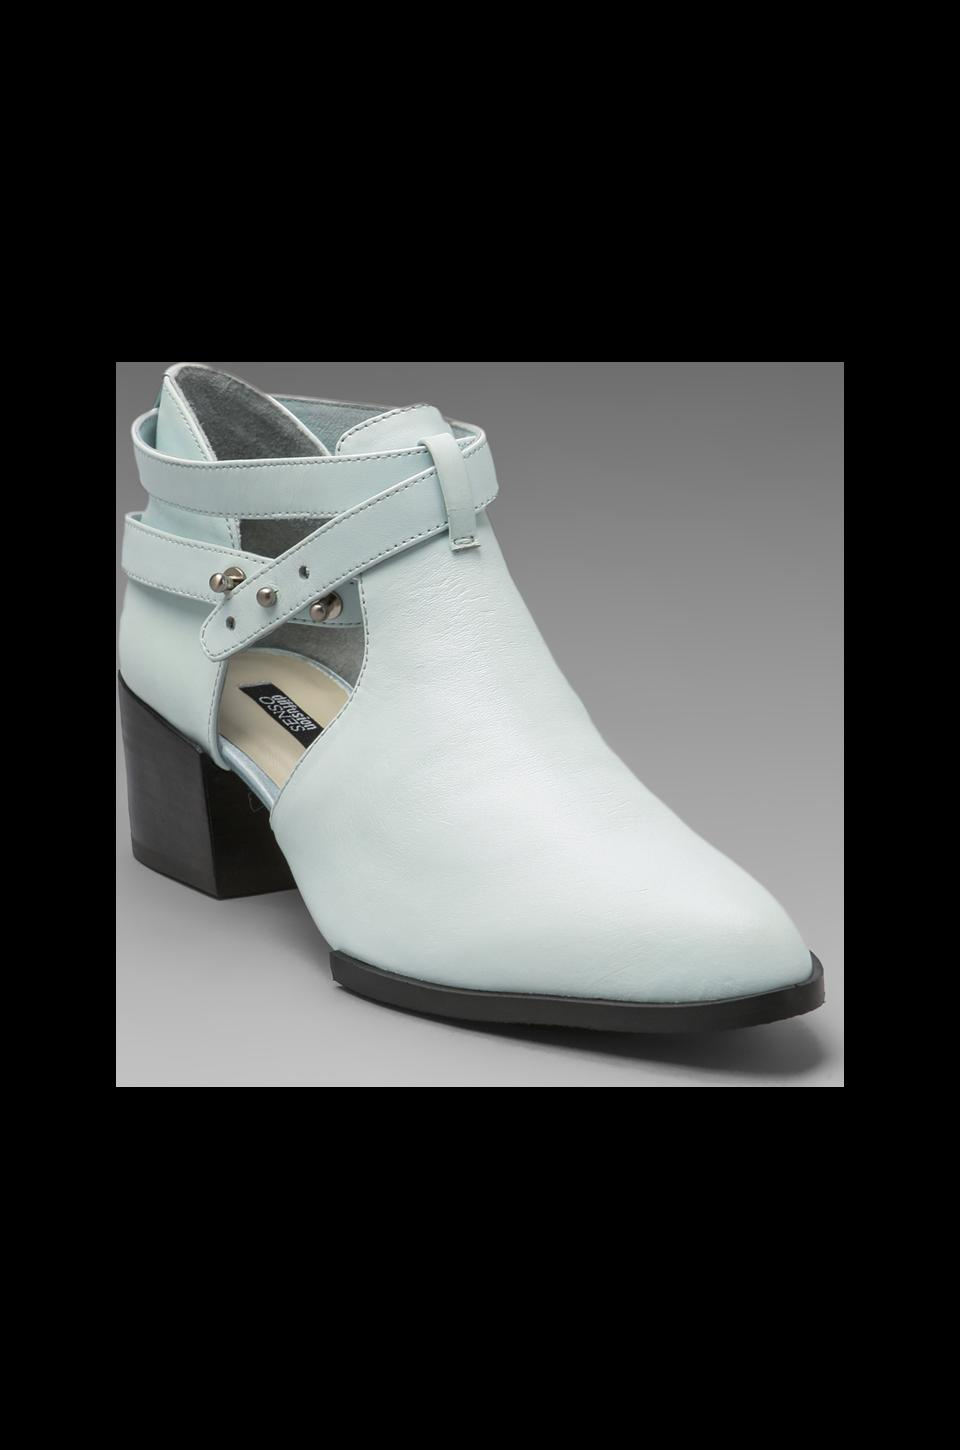 SENSO Qimat Bootie in Mint